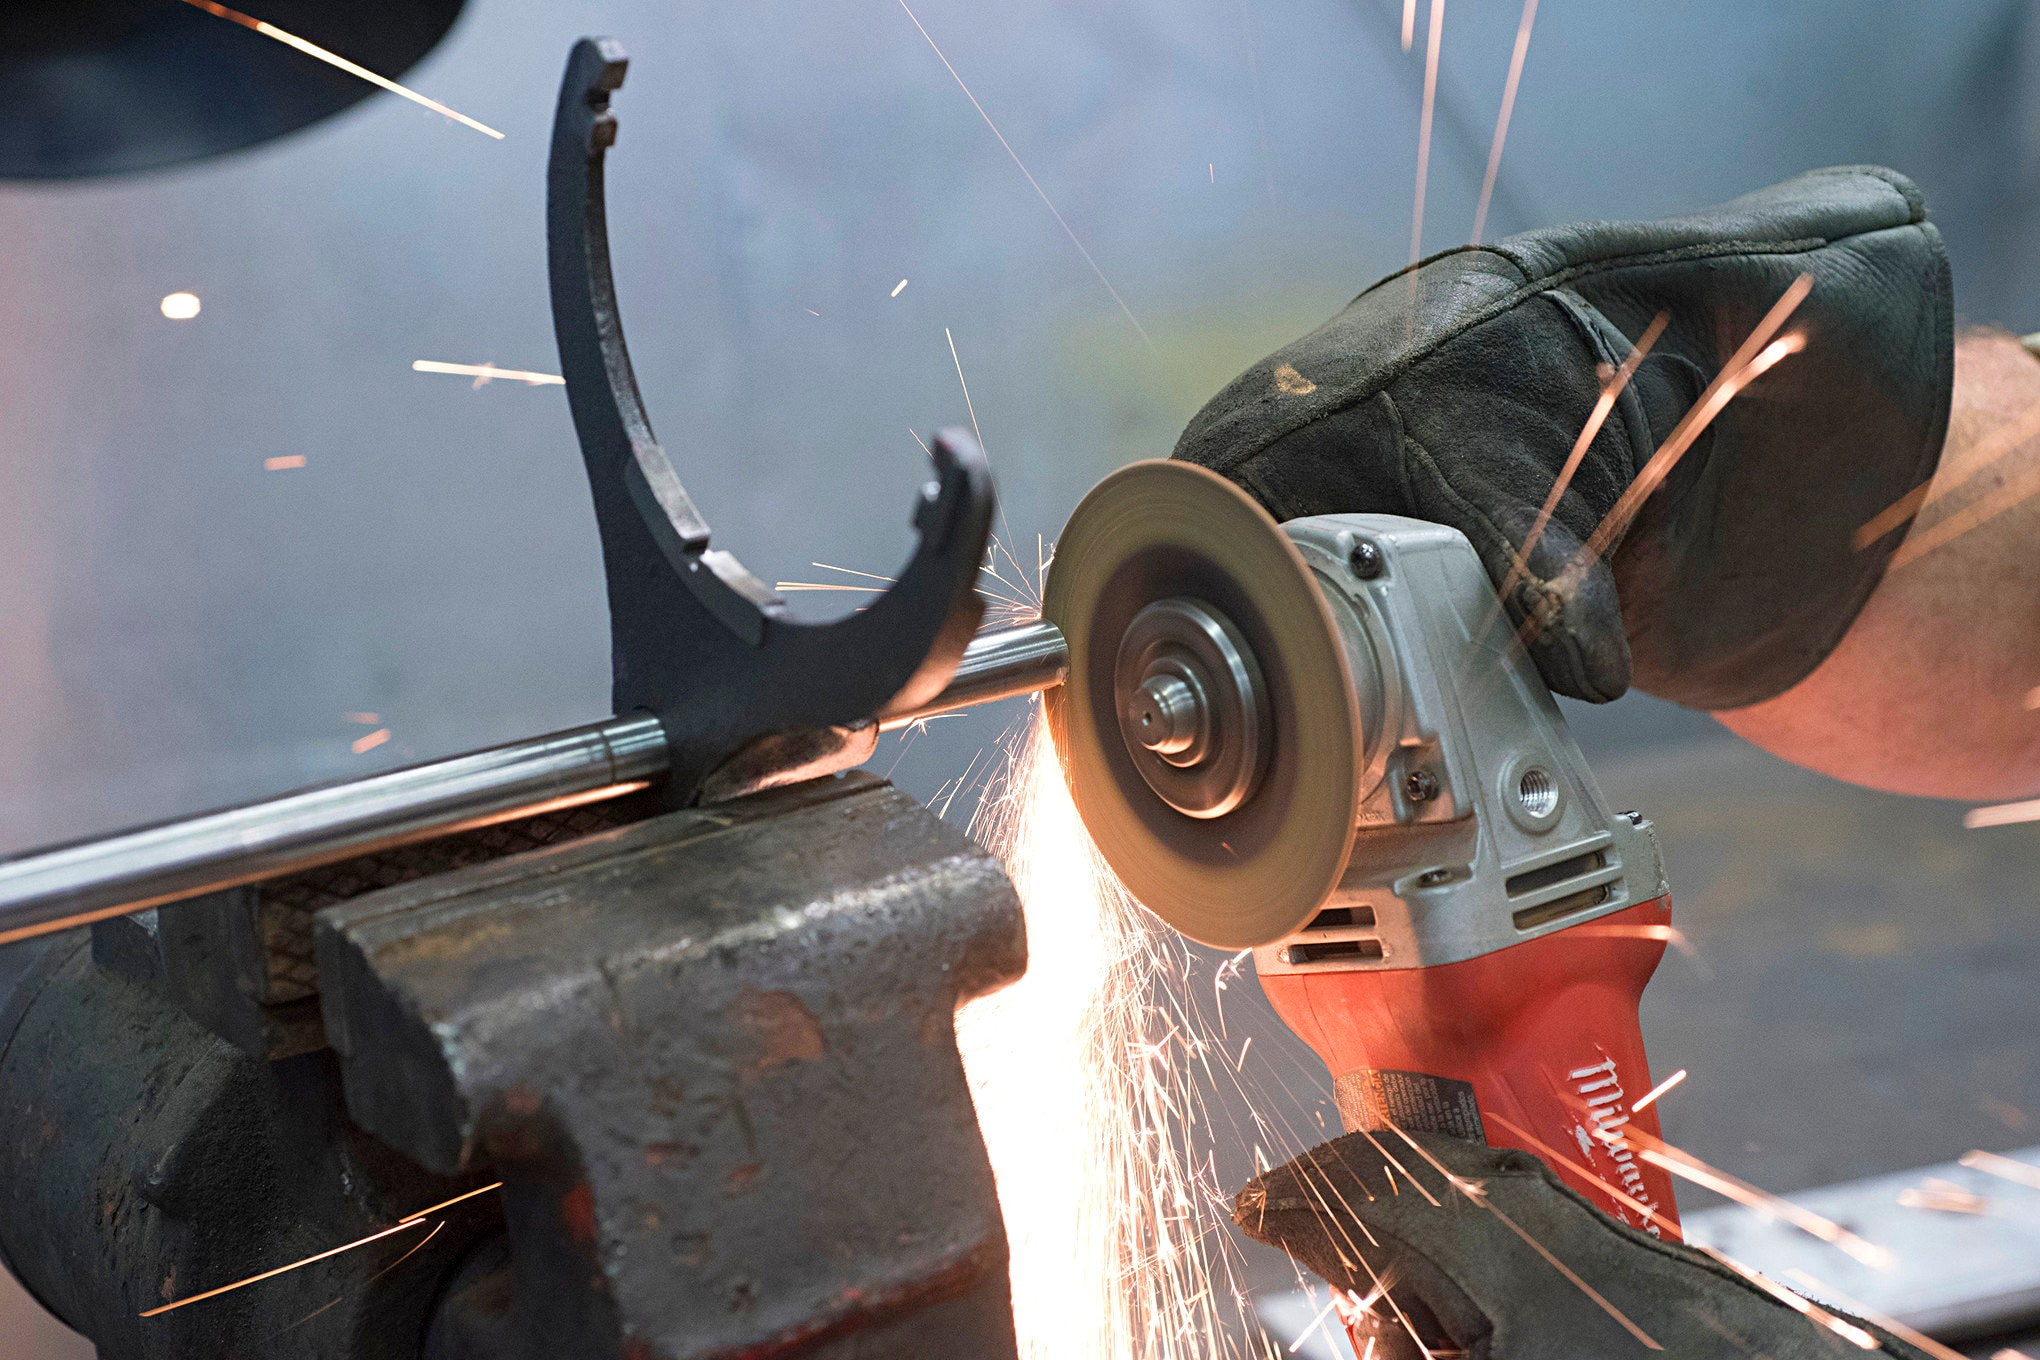 The best way to shorten the range fork shaft is to put it in a vise and use a cut-off wheel. Wearing leather gloves and safety glasses is prudent when doing such work. Smooth and bevel the cut end of the shaft when finished.